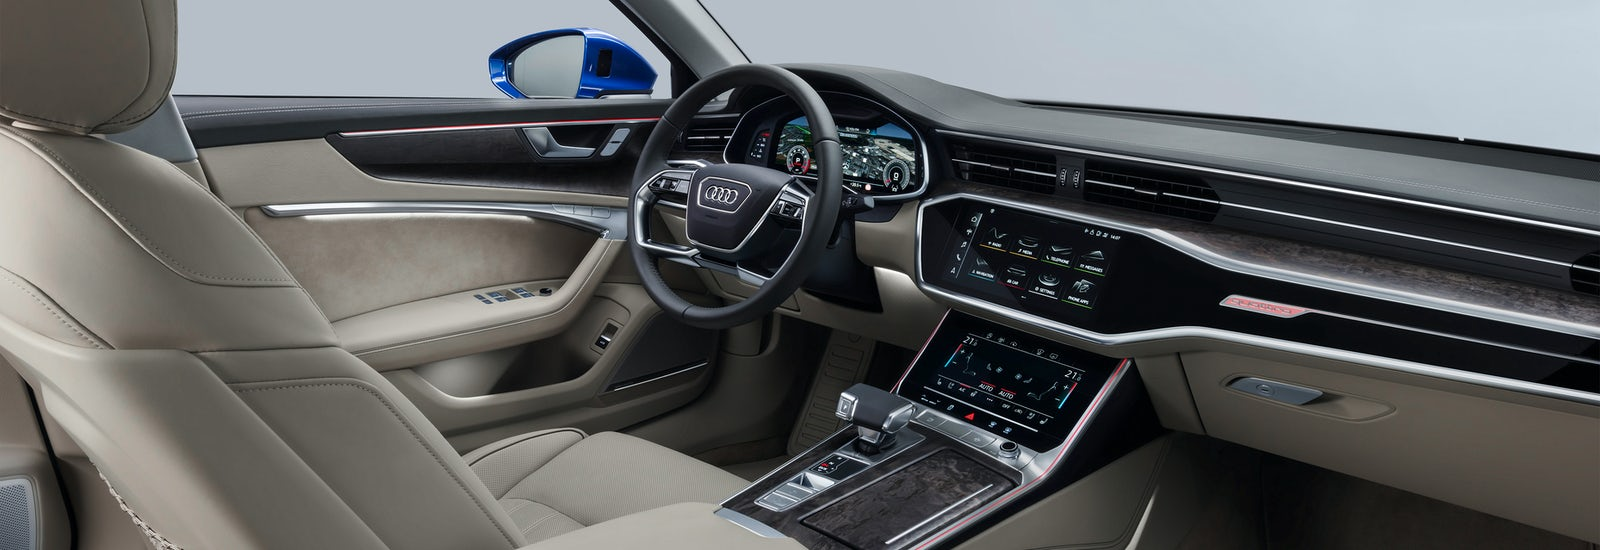 2018 Audi A6 Avant price, specs and release date | carwow